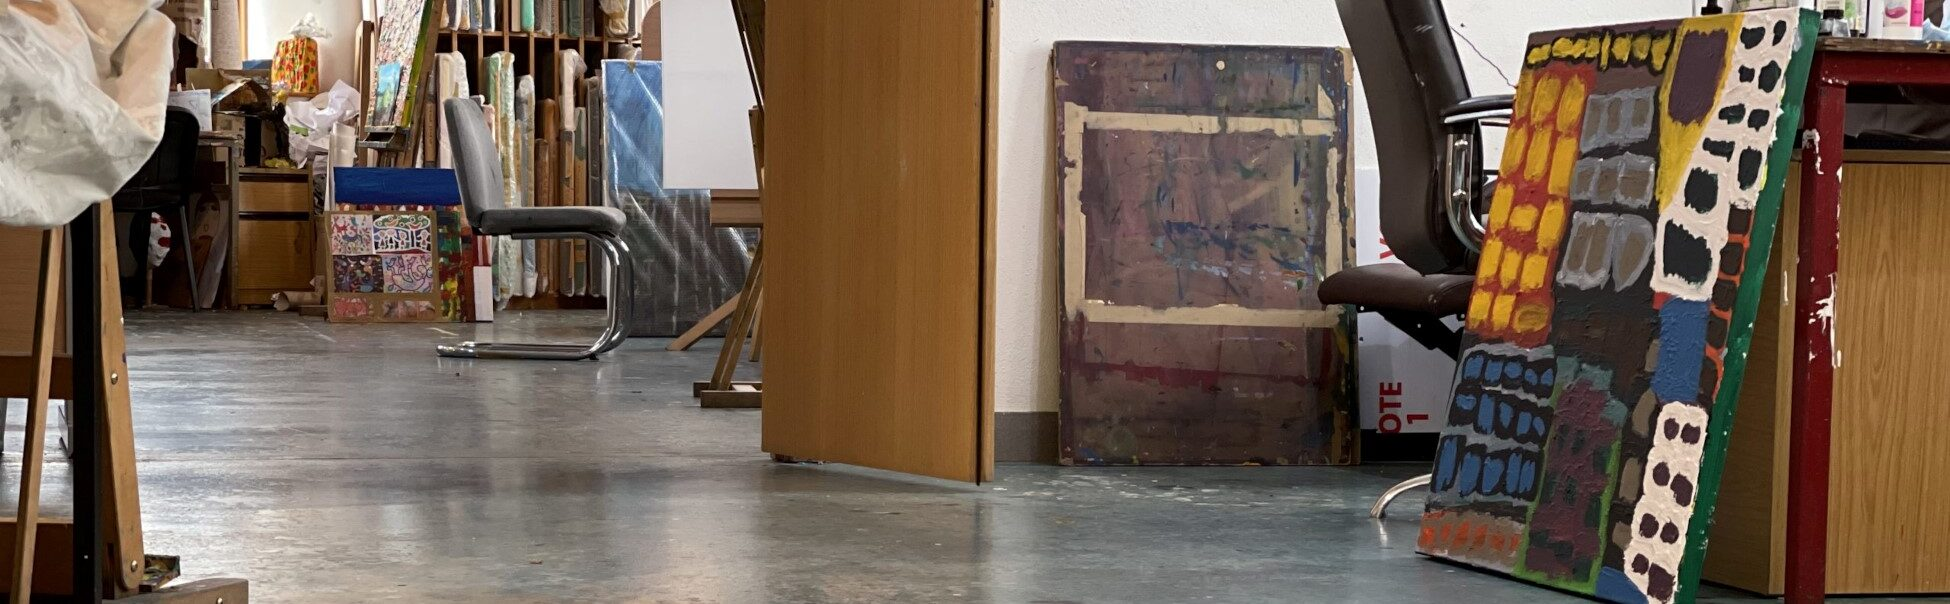 The KCAT studio floor, with artists racks built into the walls, bare concrete floors with canvases littered around